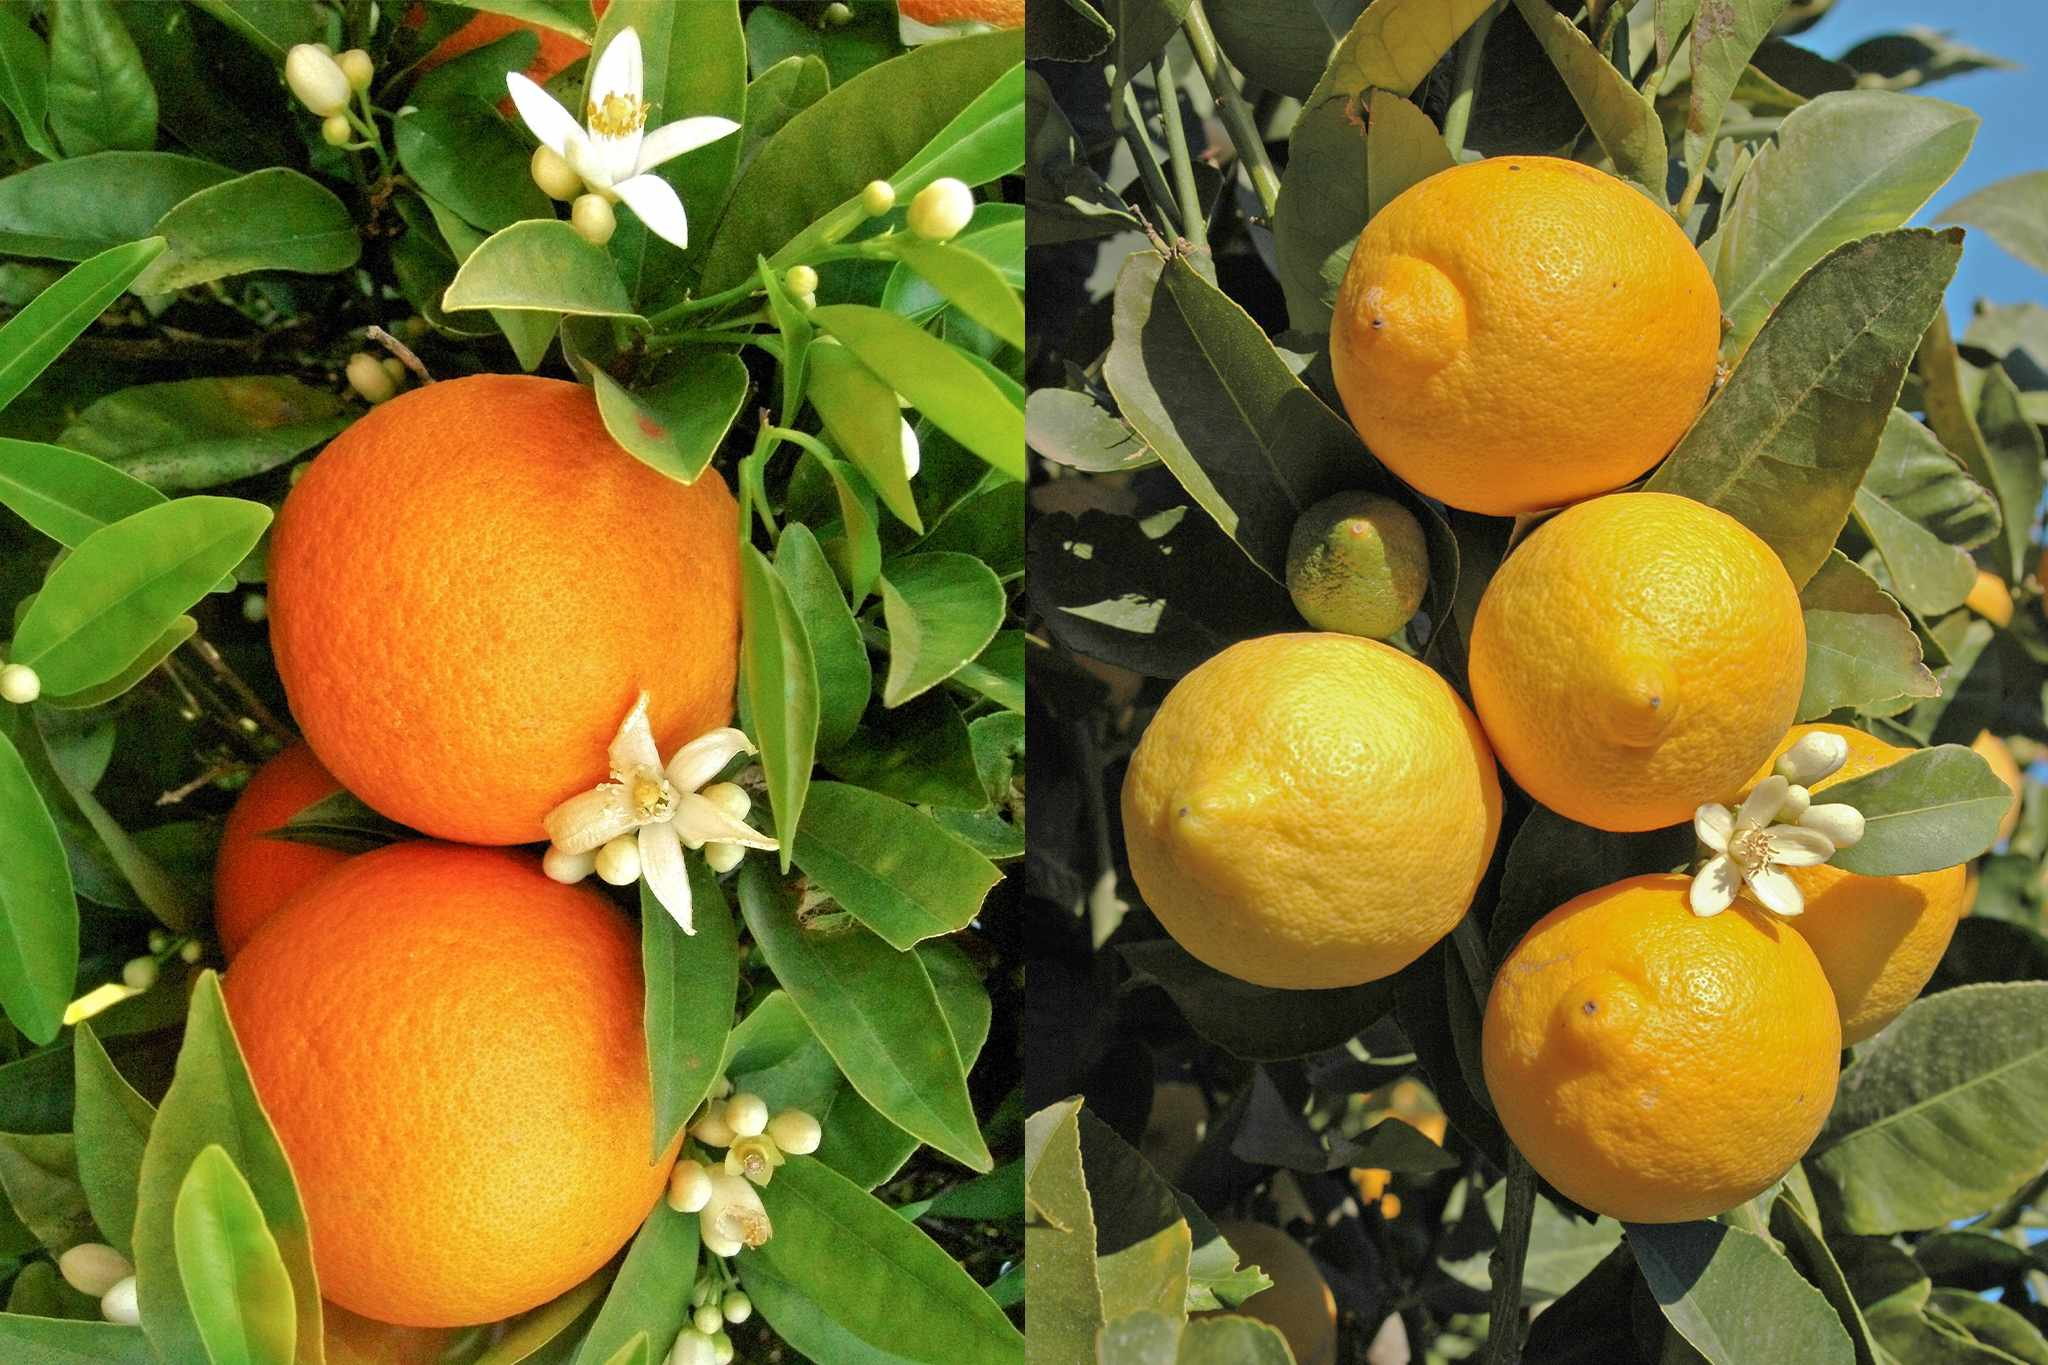 blooming-direct-citrus-trees-40-per-cent-2048-1365